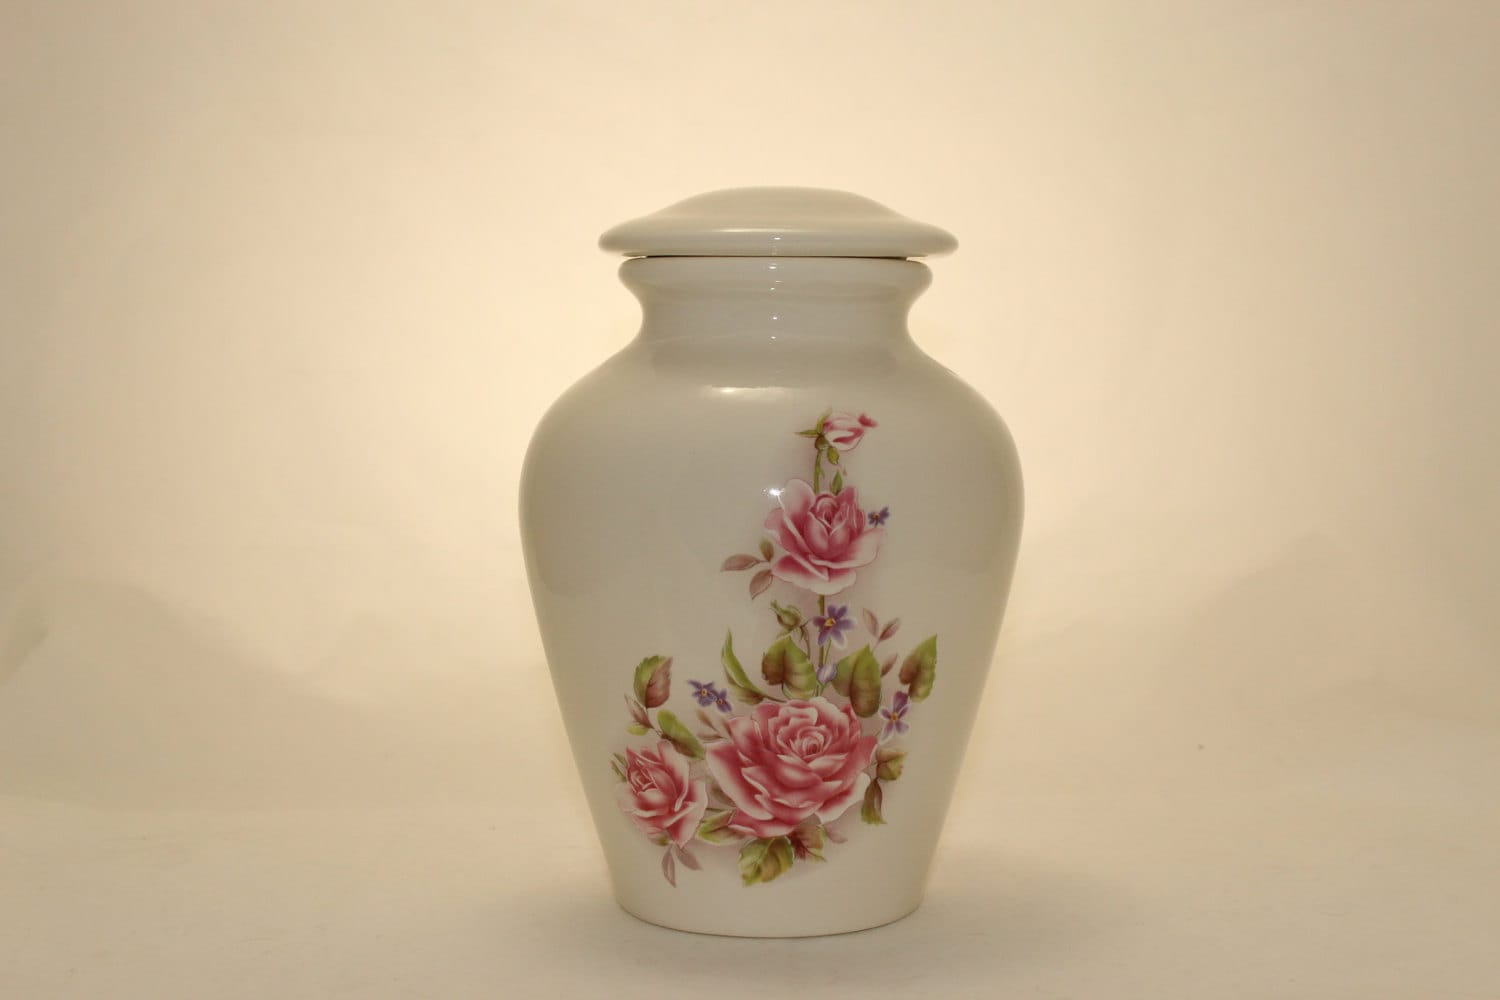 Small Ceramic Jars With Lids Small Ceramic Jar With Lid Cremation Urn With Pink Roses